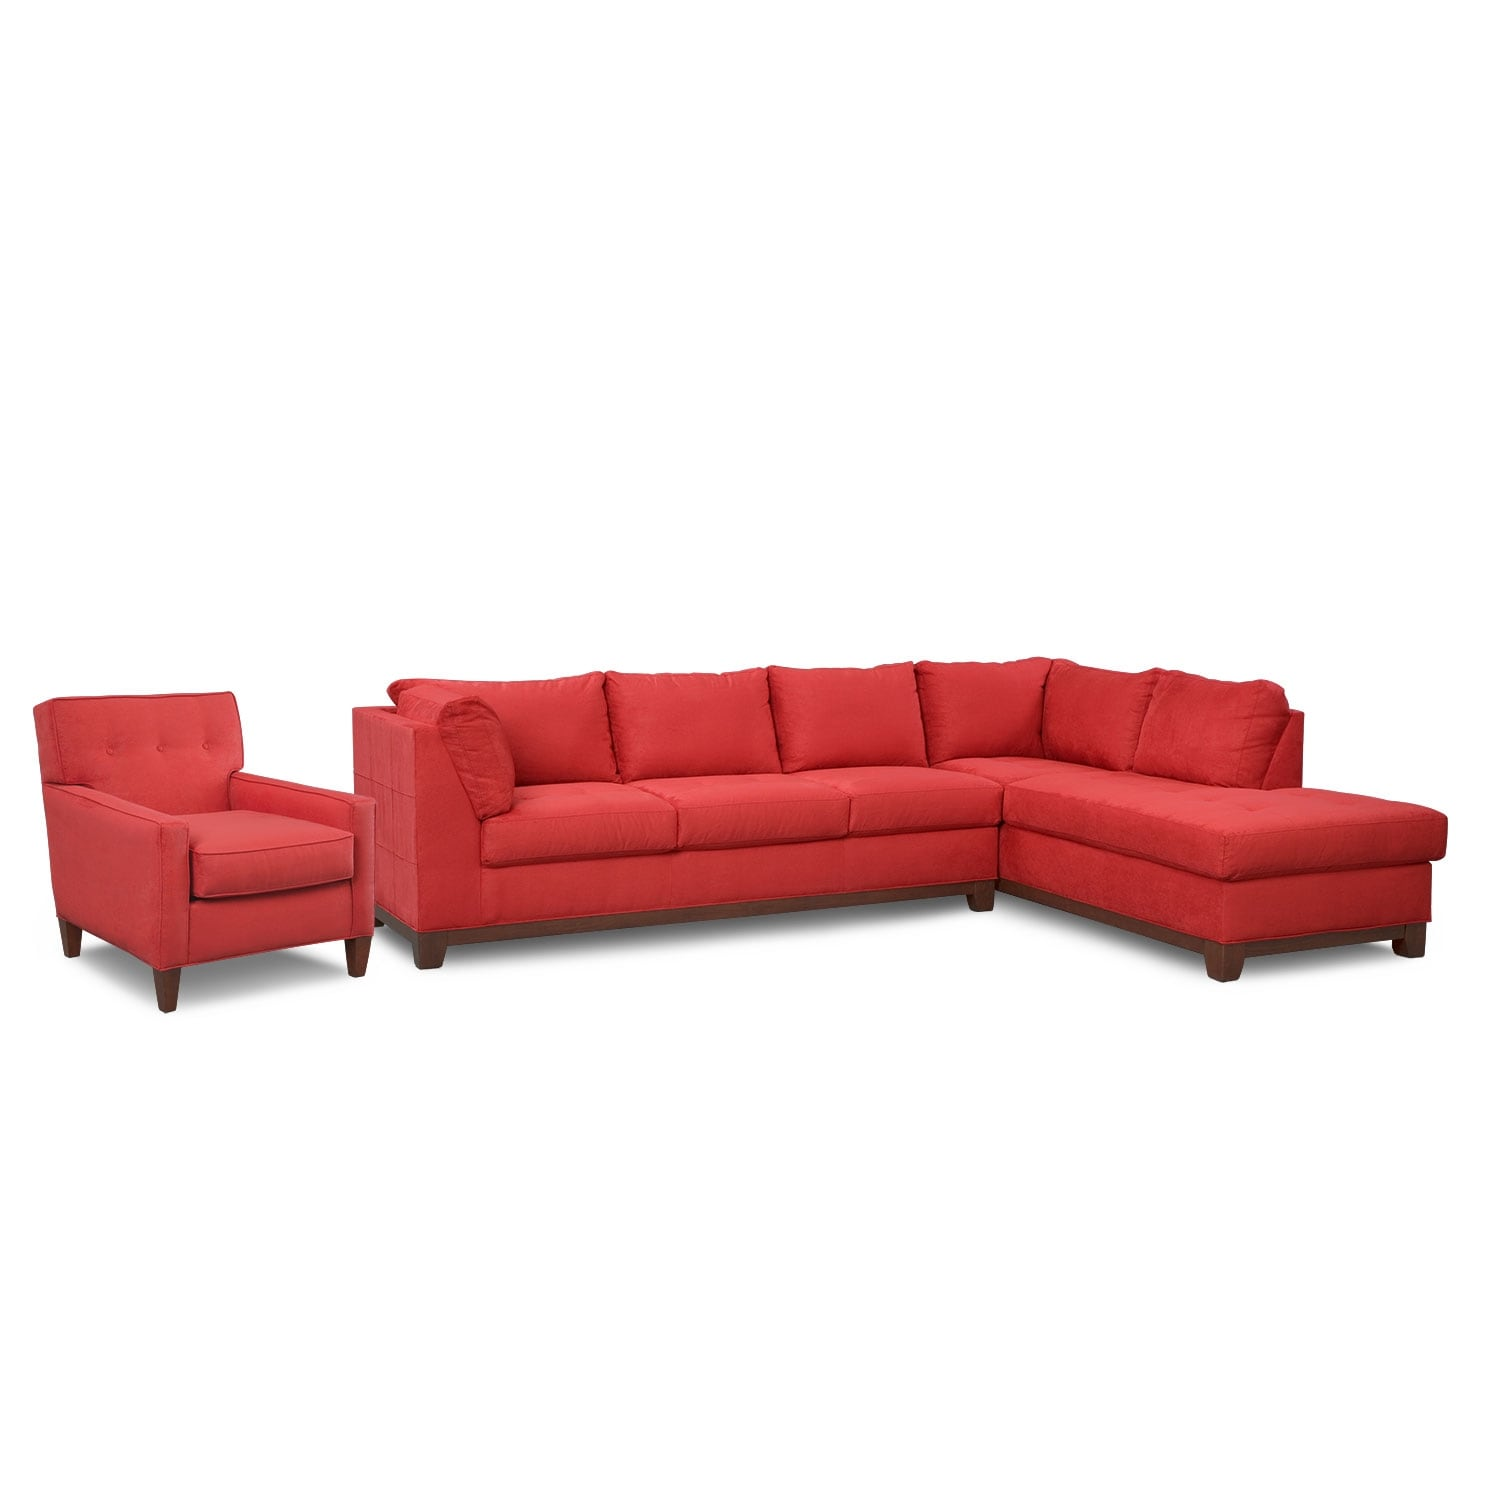 Living Room Furniture - Soho 2-Piece Sectional with Right-Facing Chaise and Chair - Red